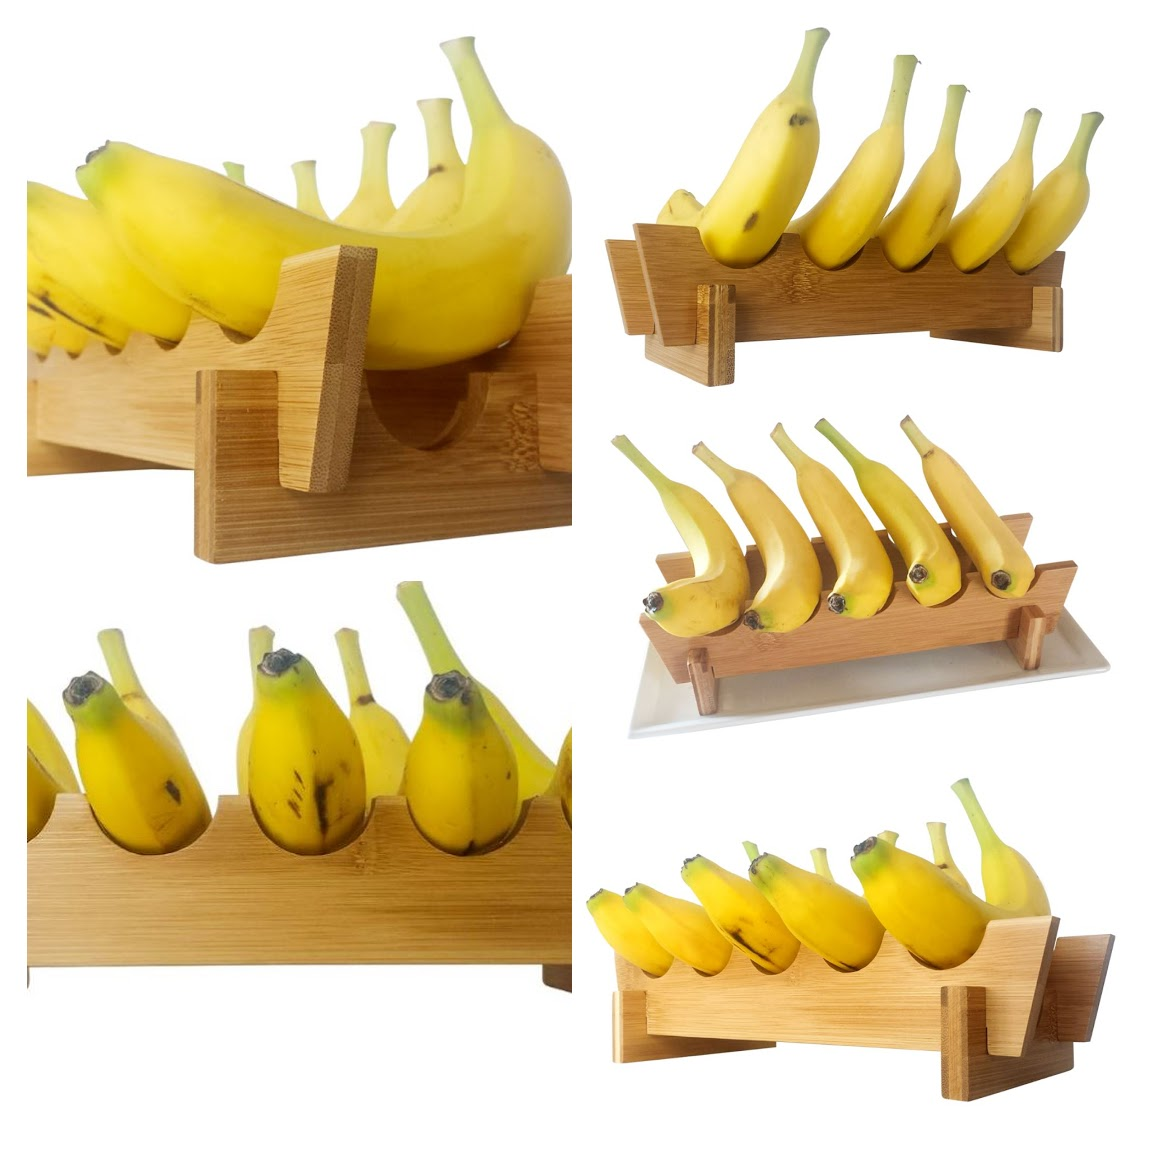 Banana holder. Banana hanger. Banana organizer, banana storage; banana store; banana storage bag; keep bananas fresh longer; bag to keep bananas fresh; where to store bananas; fresh banana; banana bag for fridge; best way to keep bananas fresh; best way to keep bananas; preserving bananas; best place to store bananas; keep bananas from browning; bananas in fridge; banana storage container; keep bananas longer; best storage for bananas; best way to preserve bananas; refrigerate bananas; banana preservation bag; banana fresh bag; banana bag to keep bananas fresh; keep bananas green; keep bananas from ripening; keeping bananas; where to keep bananas; banana storage tree; keep bananas from turning brown; prevent bananas from ripening.